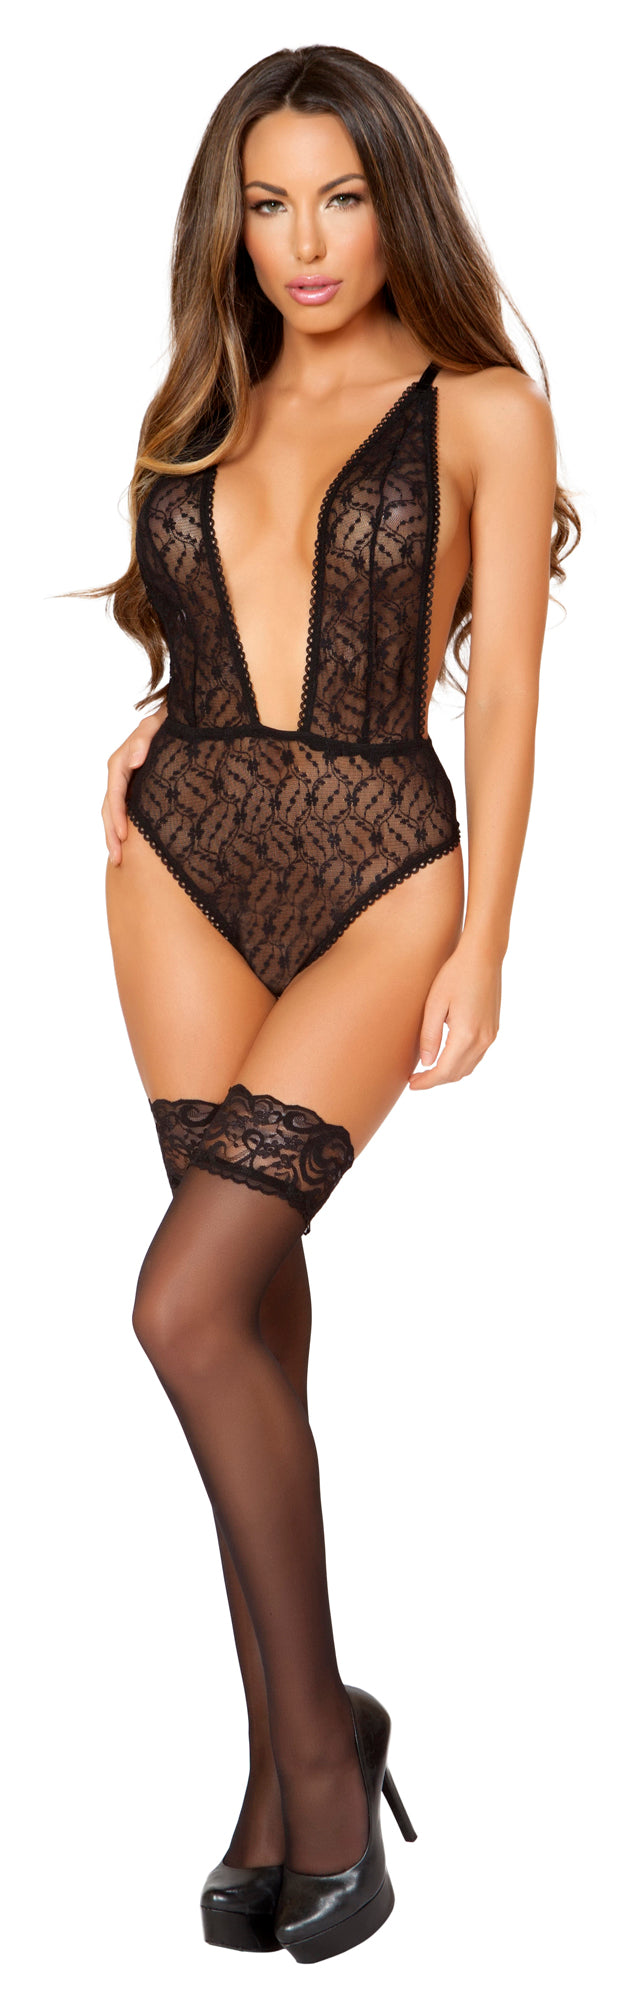 RM-LI168 Black low cut sheer teddy front